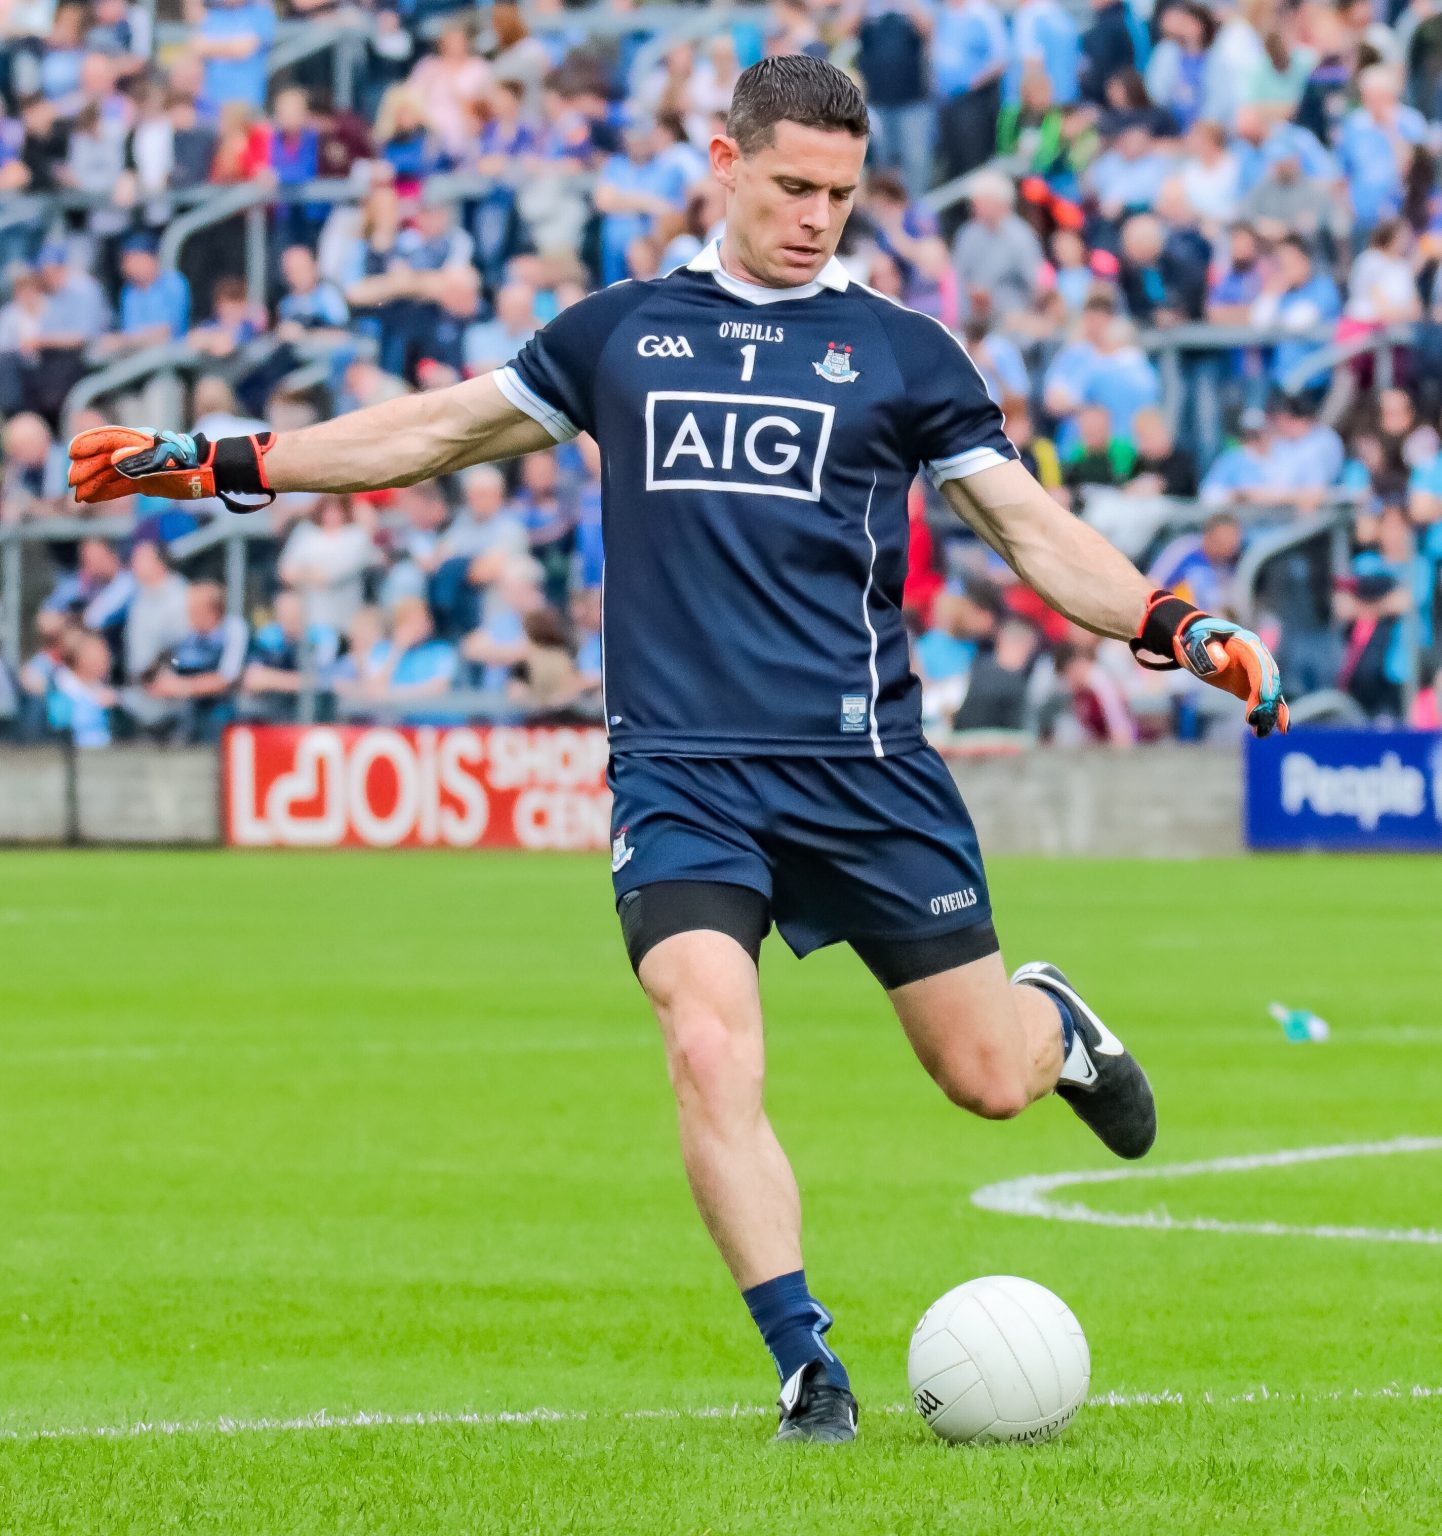 Dublin captain Stephen Cluxton in a navy jersey and shorts kicking a white ball off the ground with his side set to make a new record